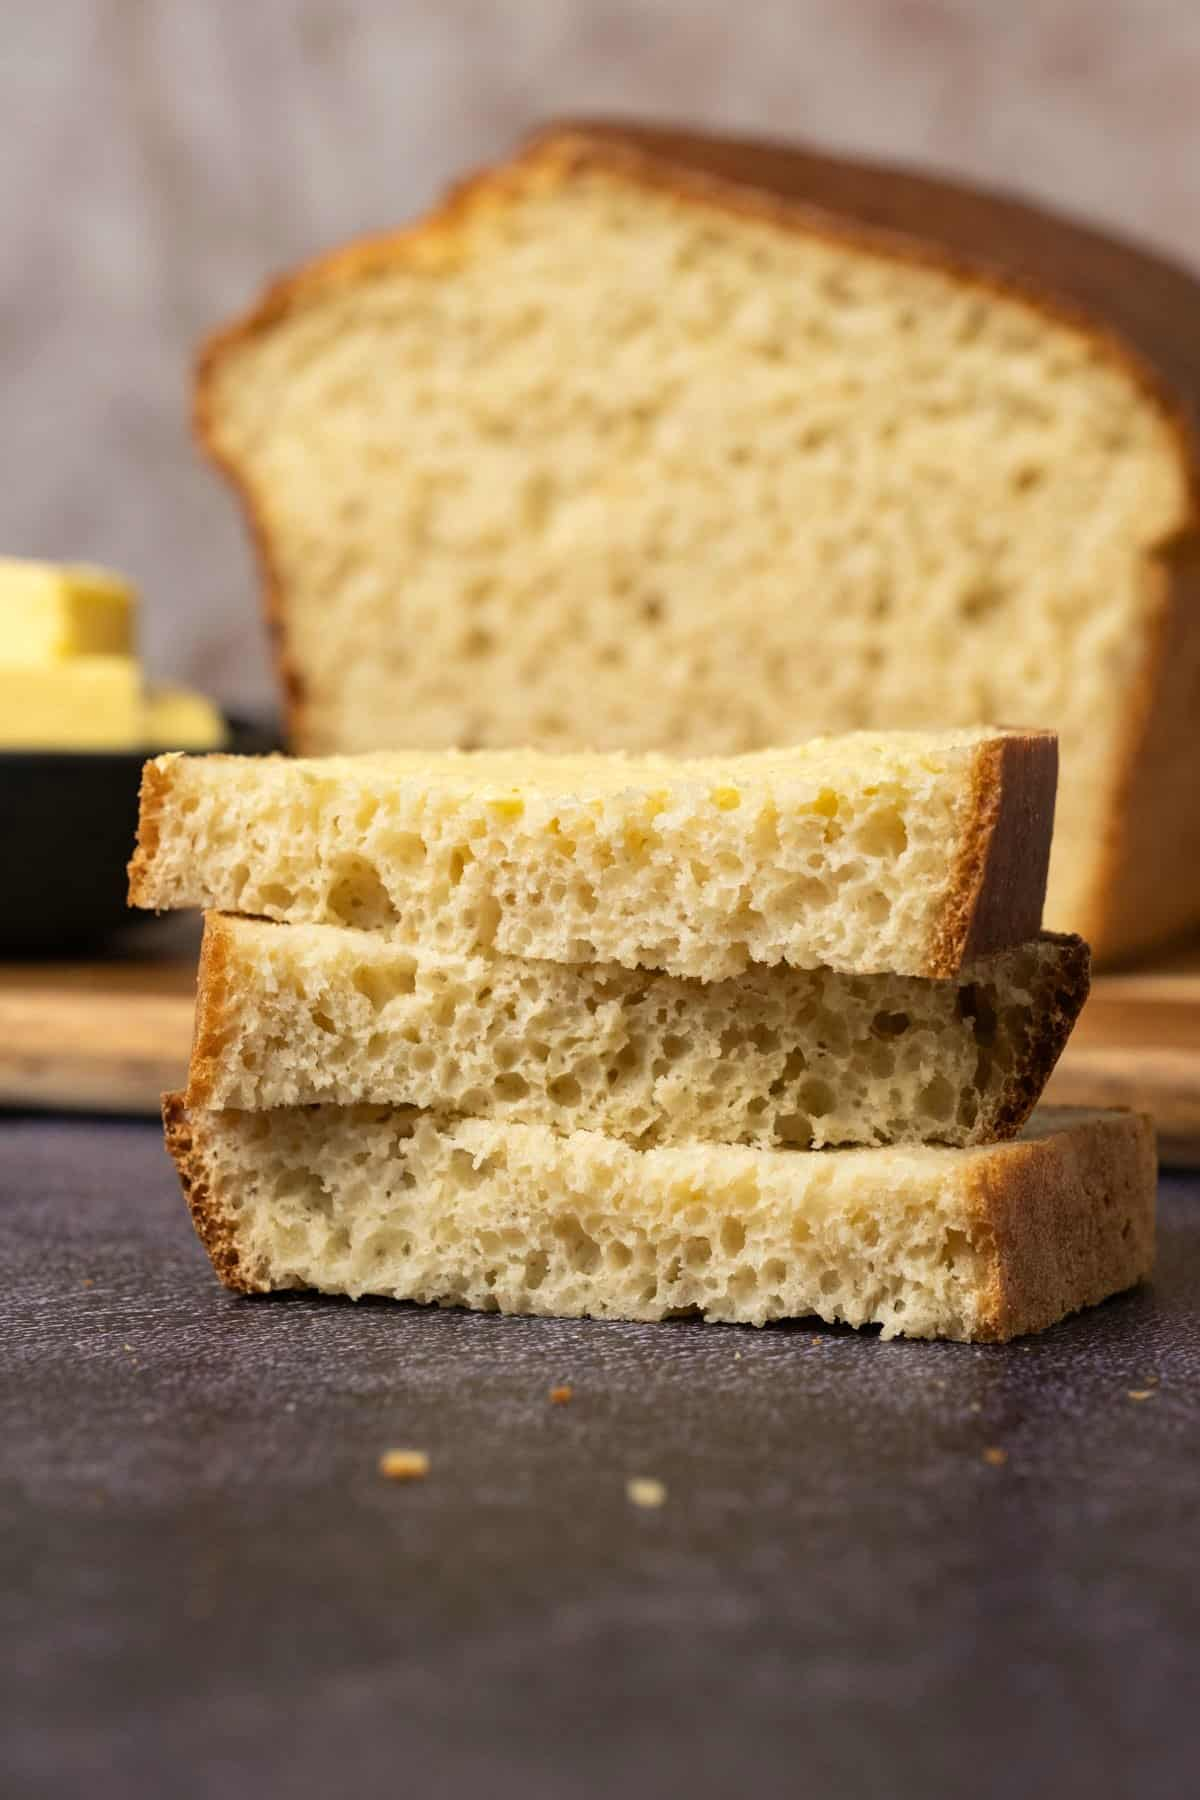 Slices of buttered white bread in a stack.